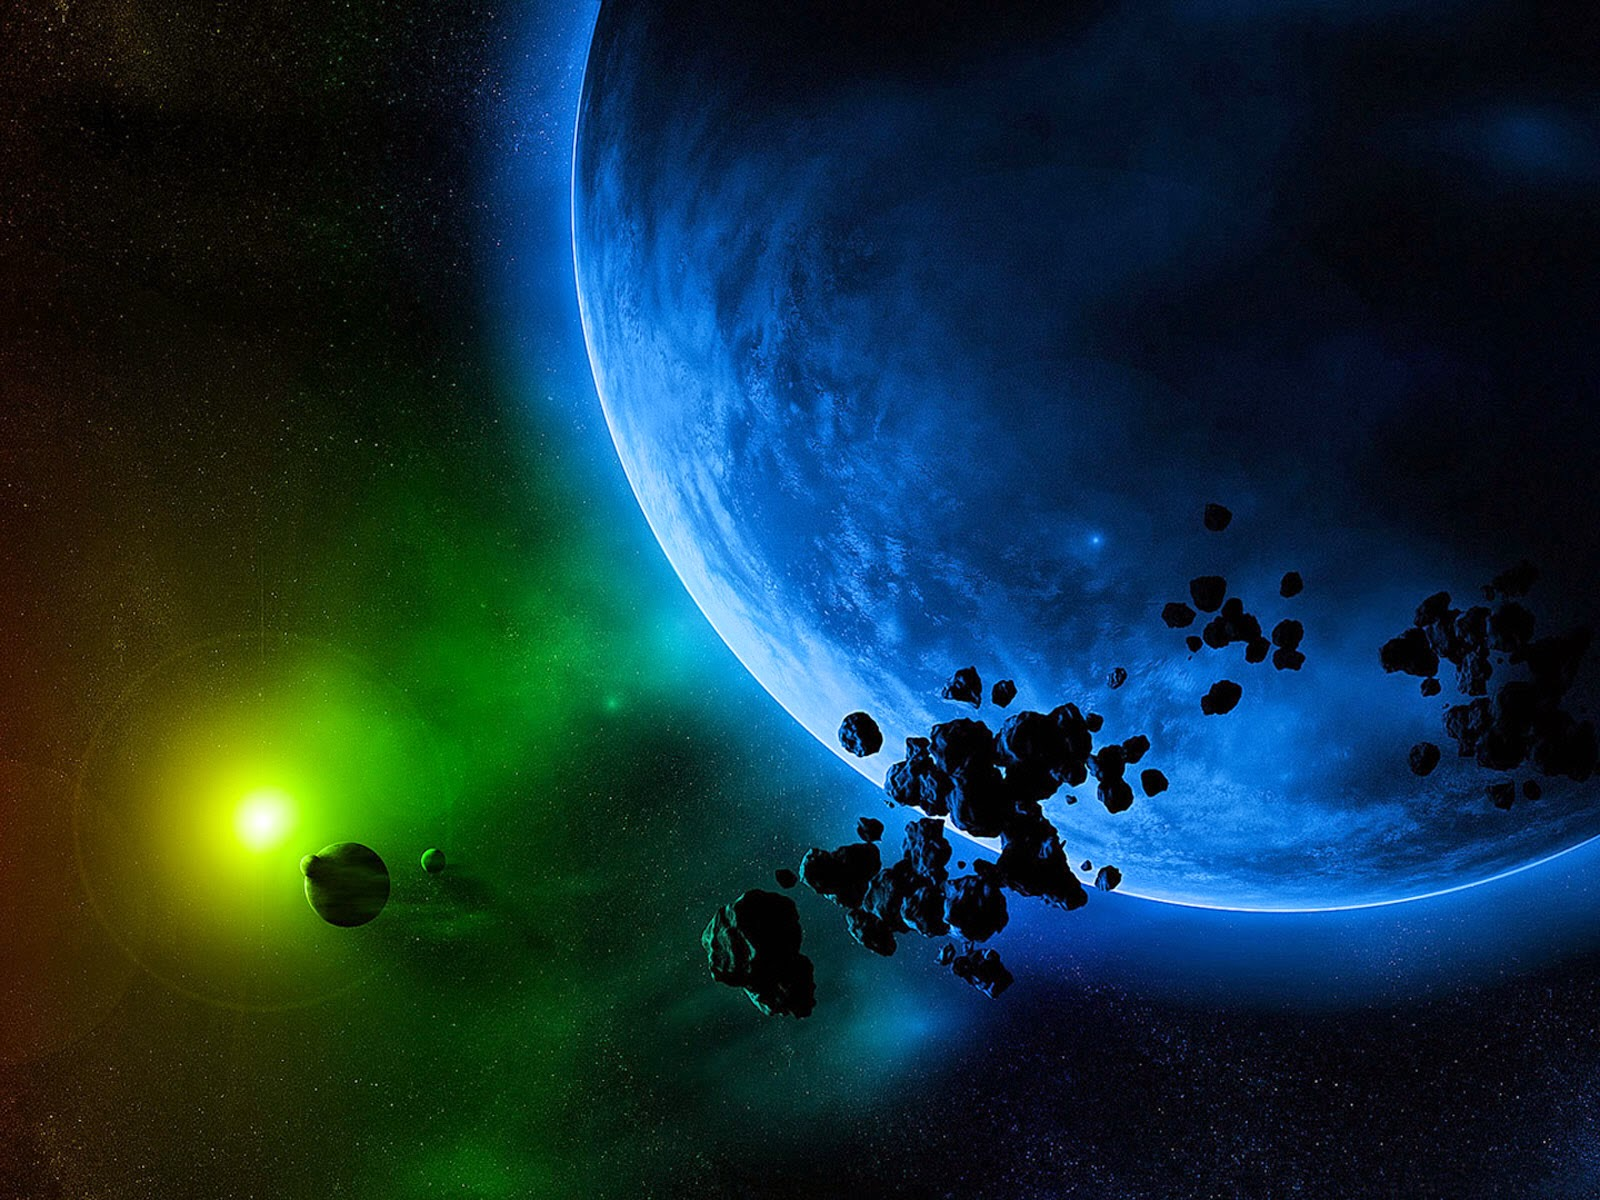 real-outer-space-image-earth-with-asteroids-rocks.jpg